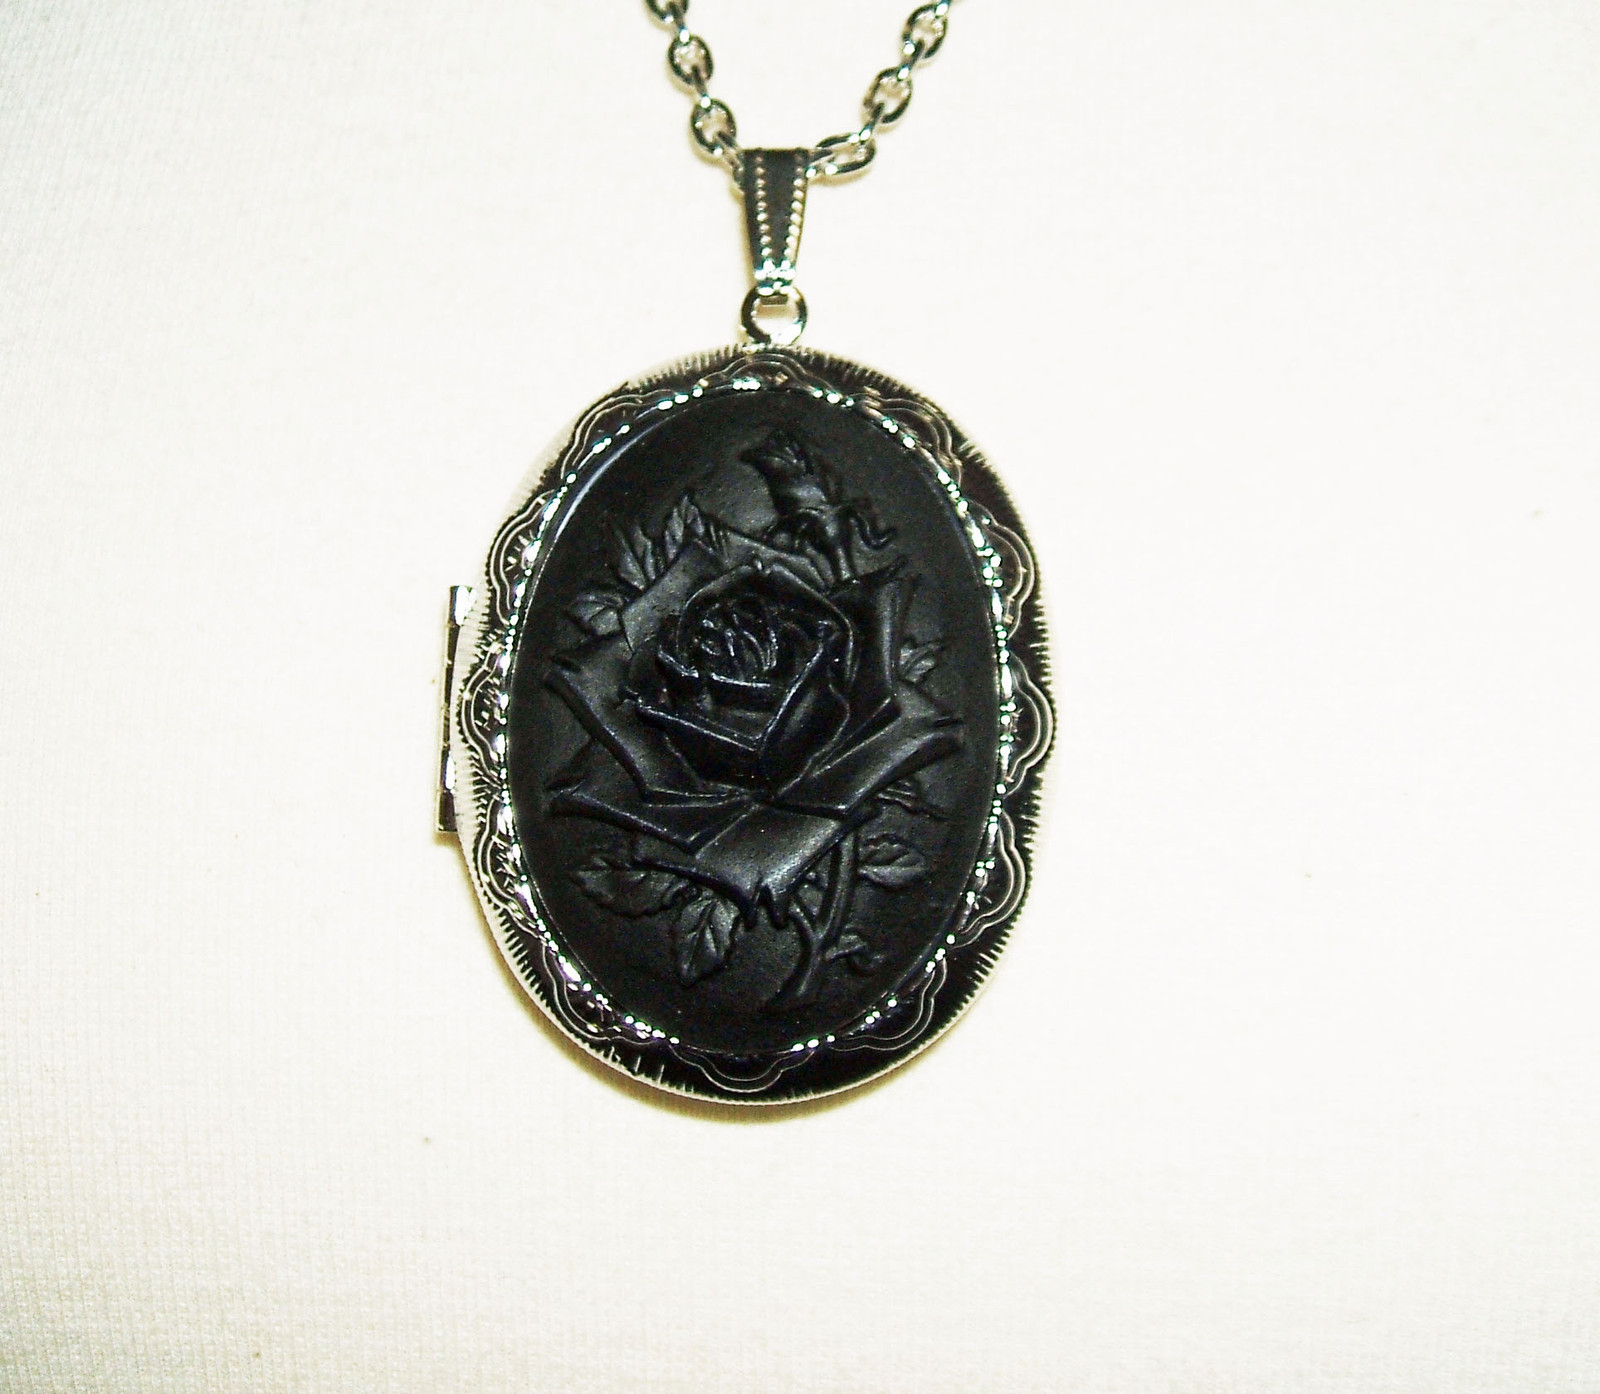 Black rose cameo necklace locket pendant victorian mourning goth black rose cameo necklace locket pendant victorian mourning goth design aloadofball Choice Image